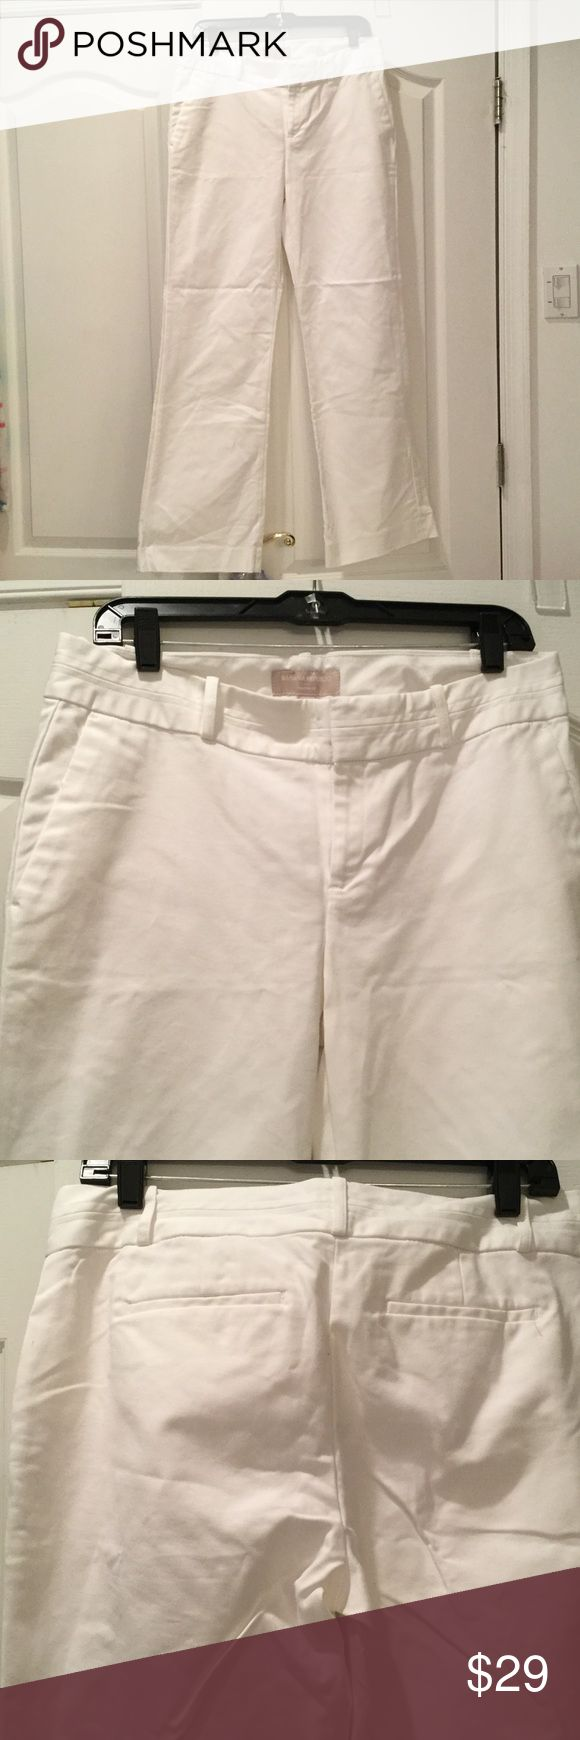 Banana Republic Martin style  white pants 10 Banana republic Martin style white cotton stretch pant 10. Never worn and nice bright white. Spandex will keep these pants looking shapely all day long...nice cotton that is not flimsy Banana Republic Pants Trousers